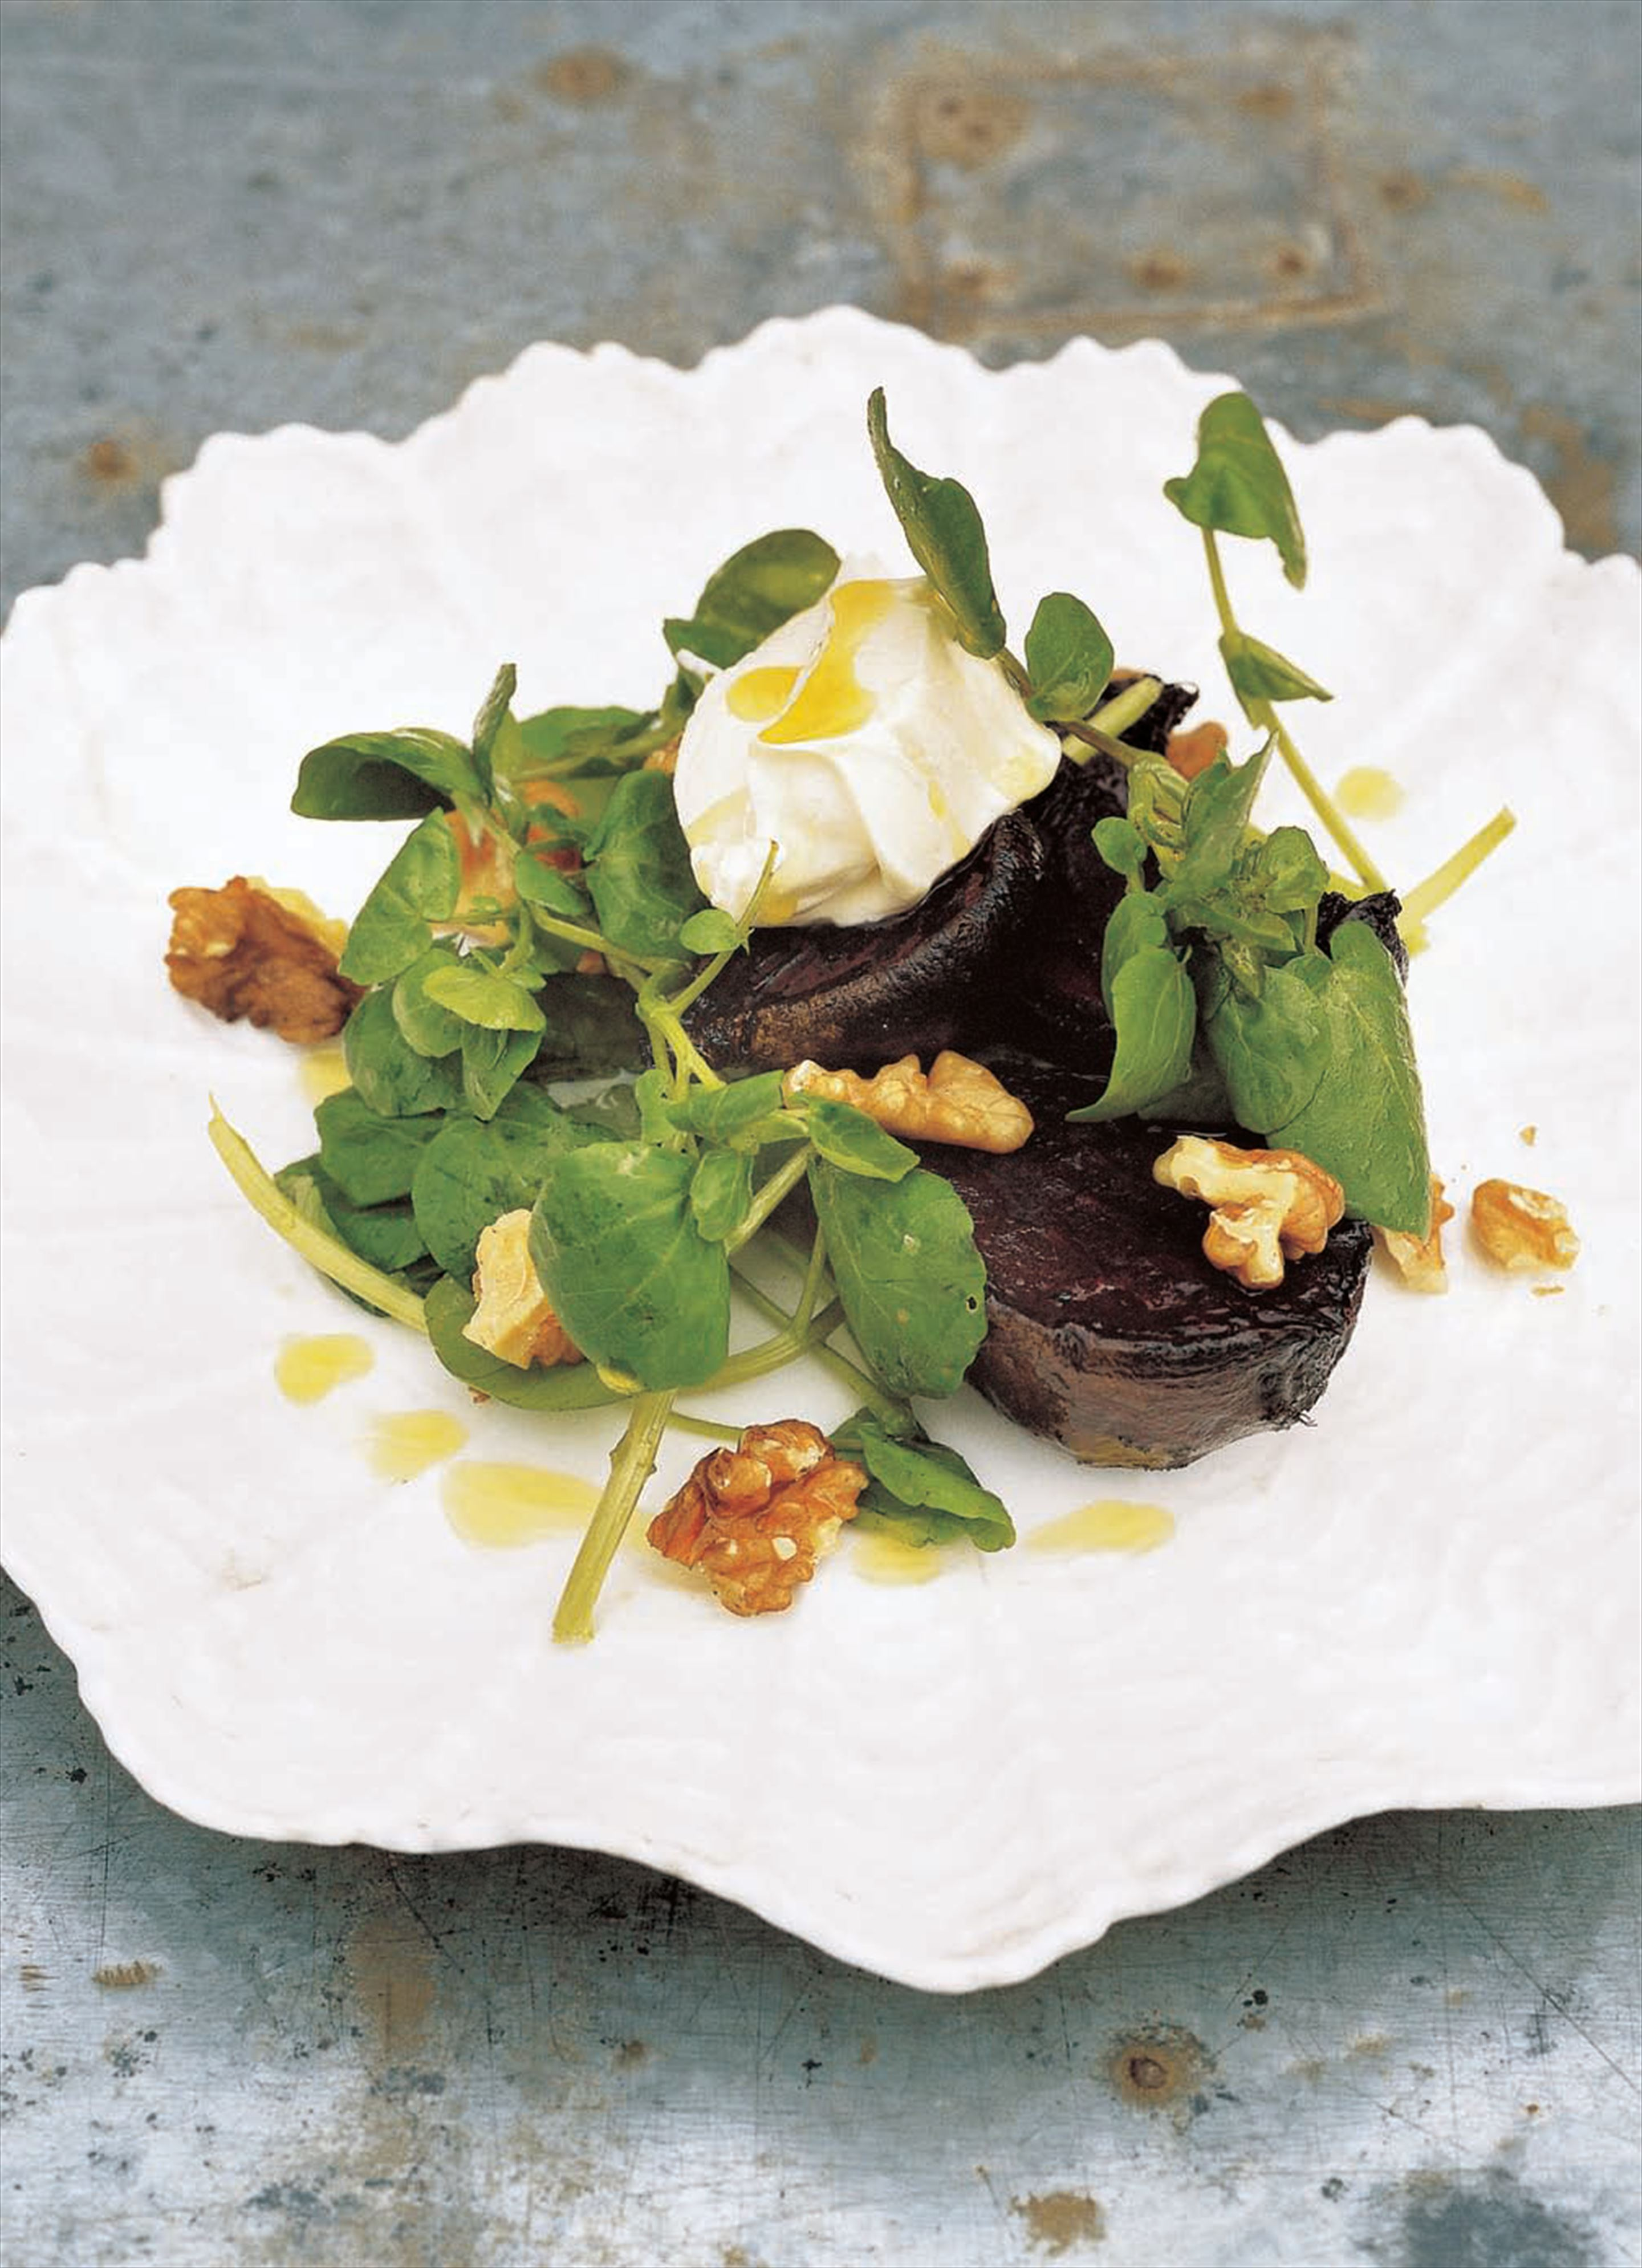 Salad of roasted beetroot, walnuts, watercress and mascarpone